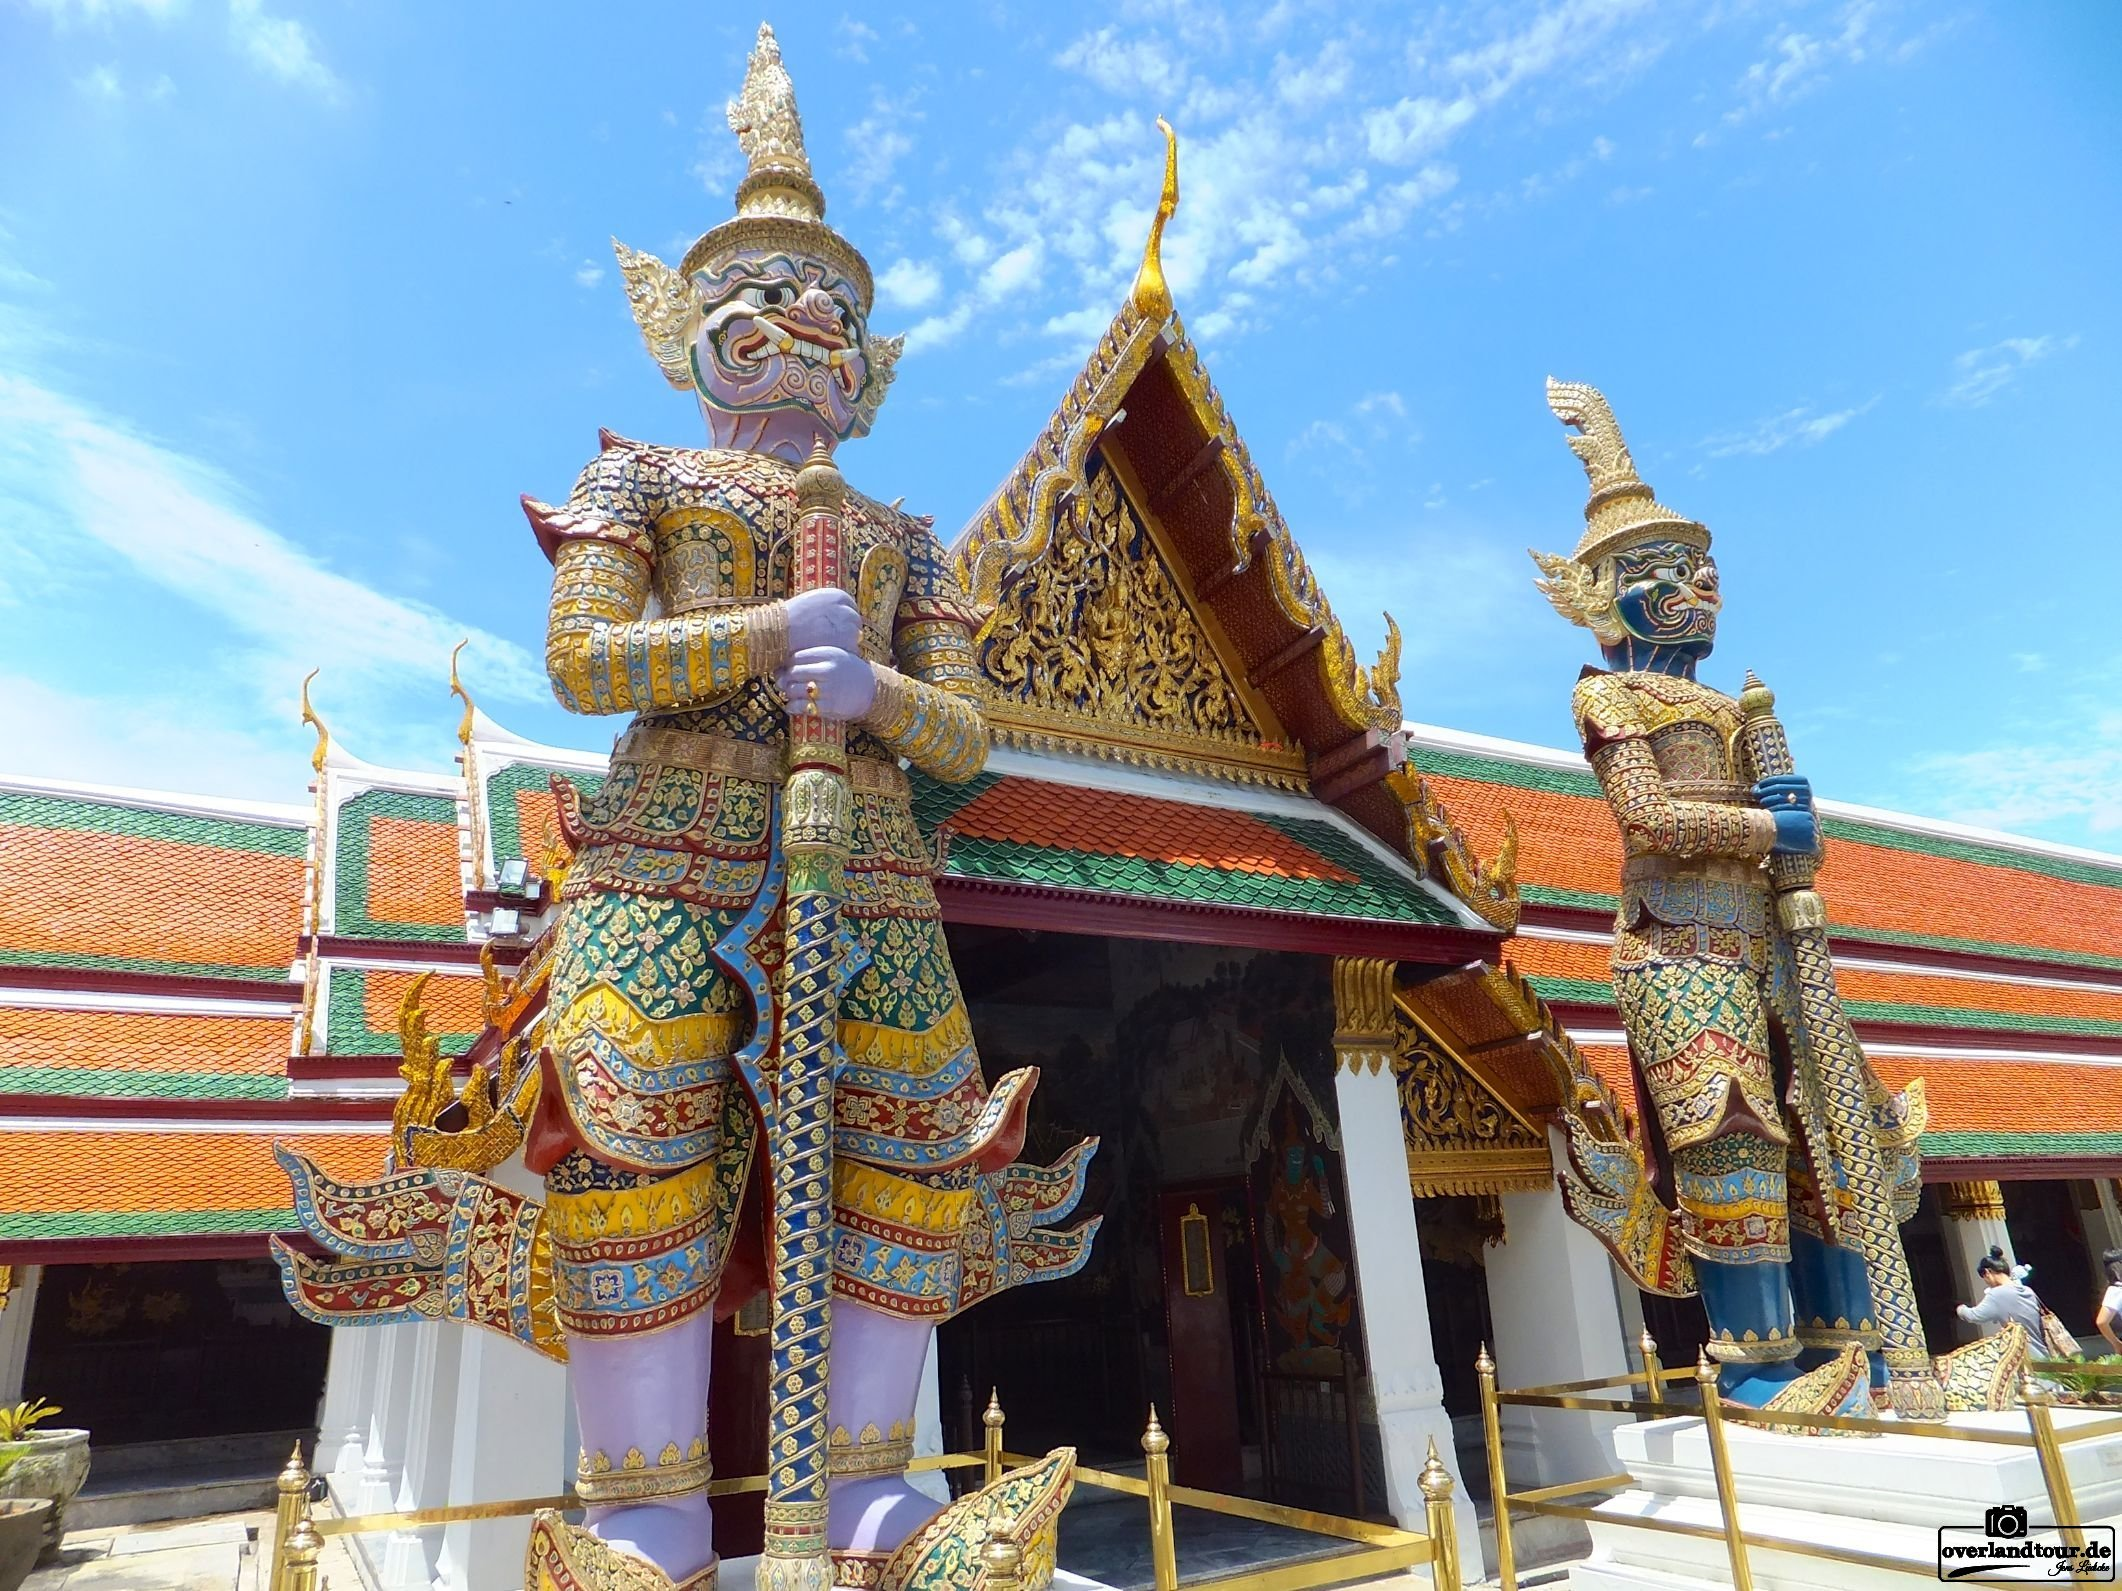 Bangkok – The Grand Palace